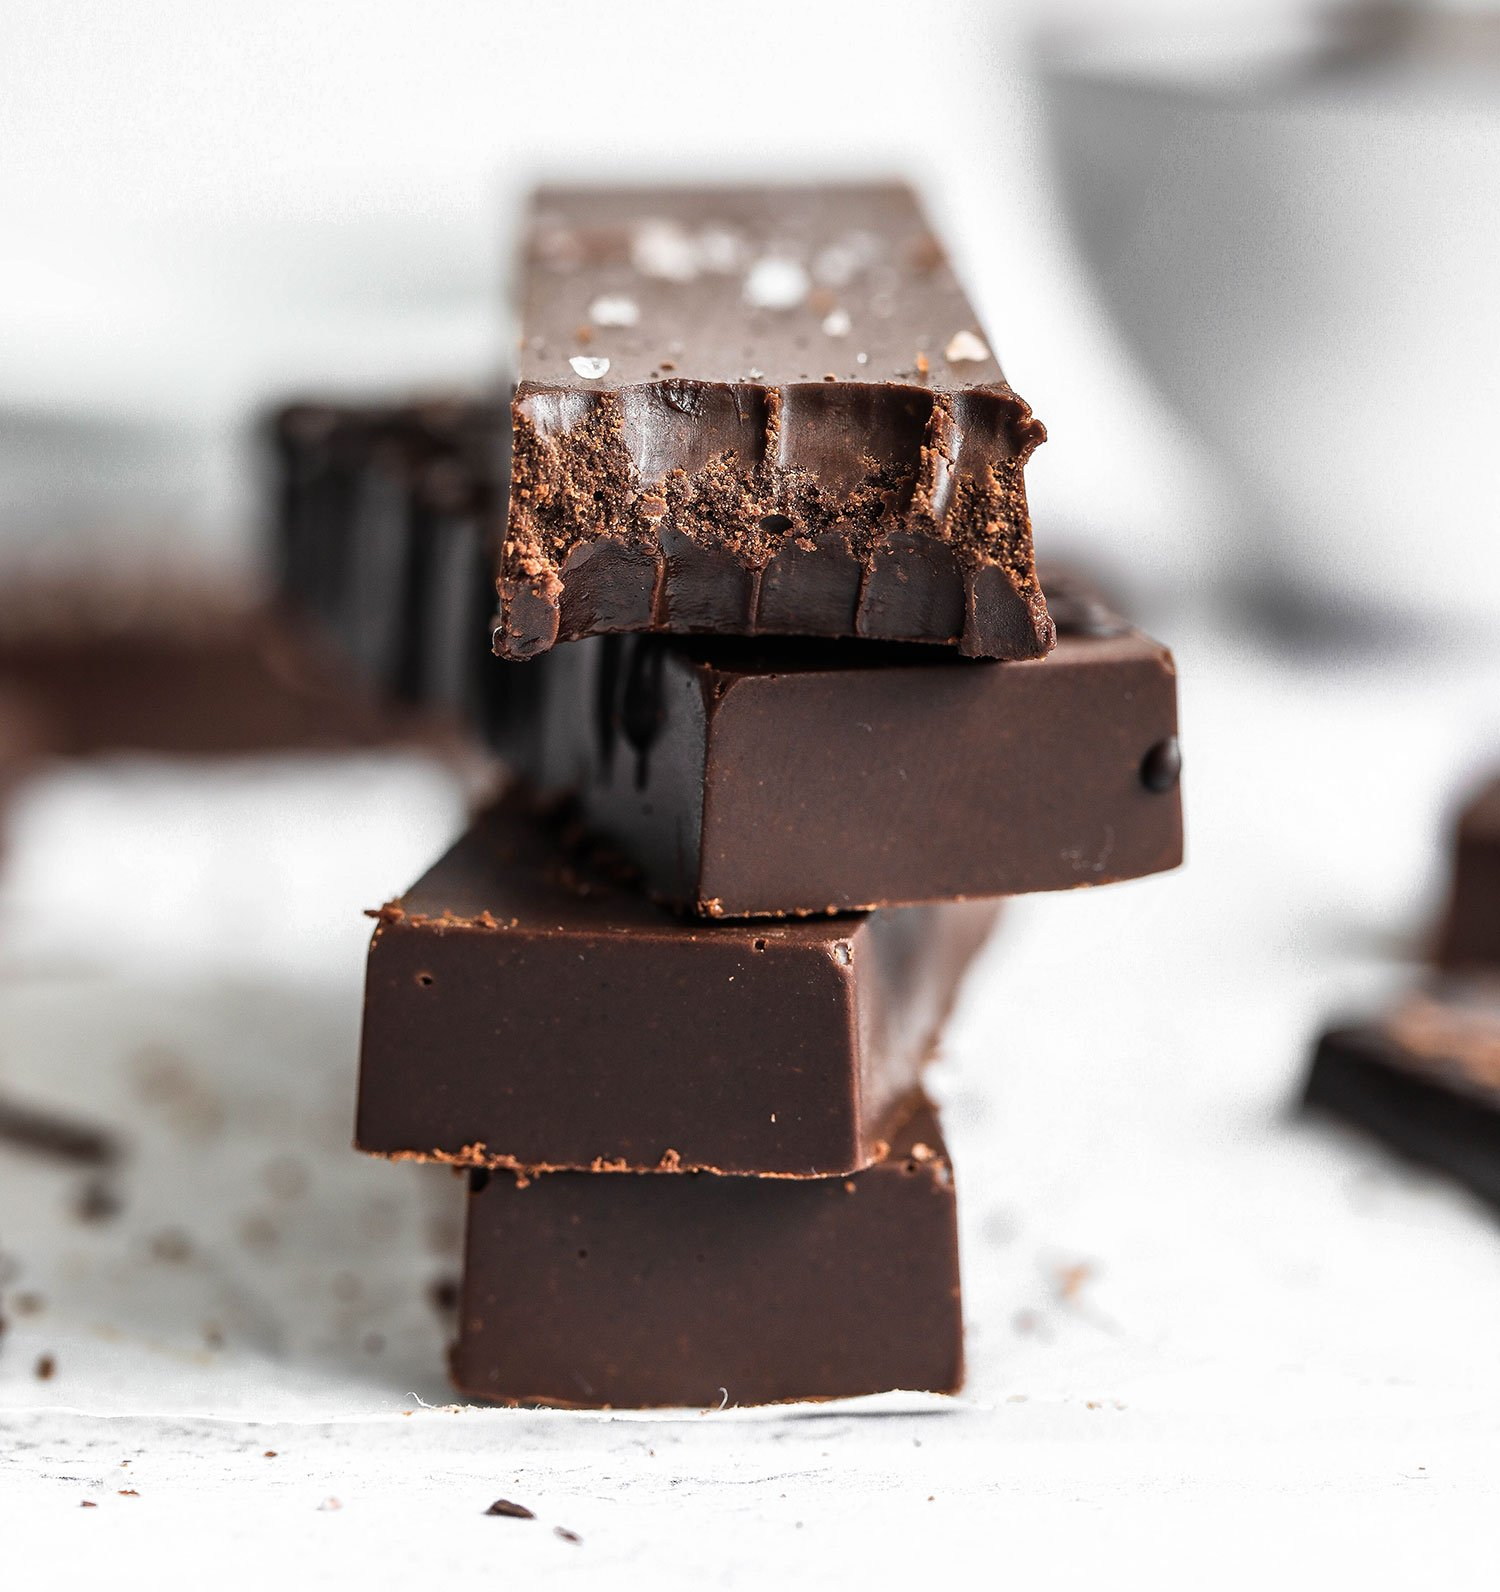 2-Ingredient Vegan Chocolate Fudge